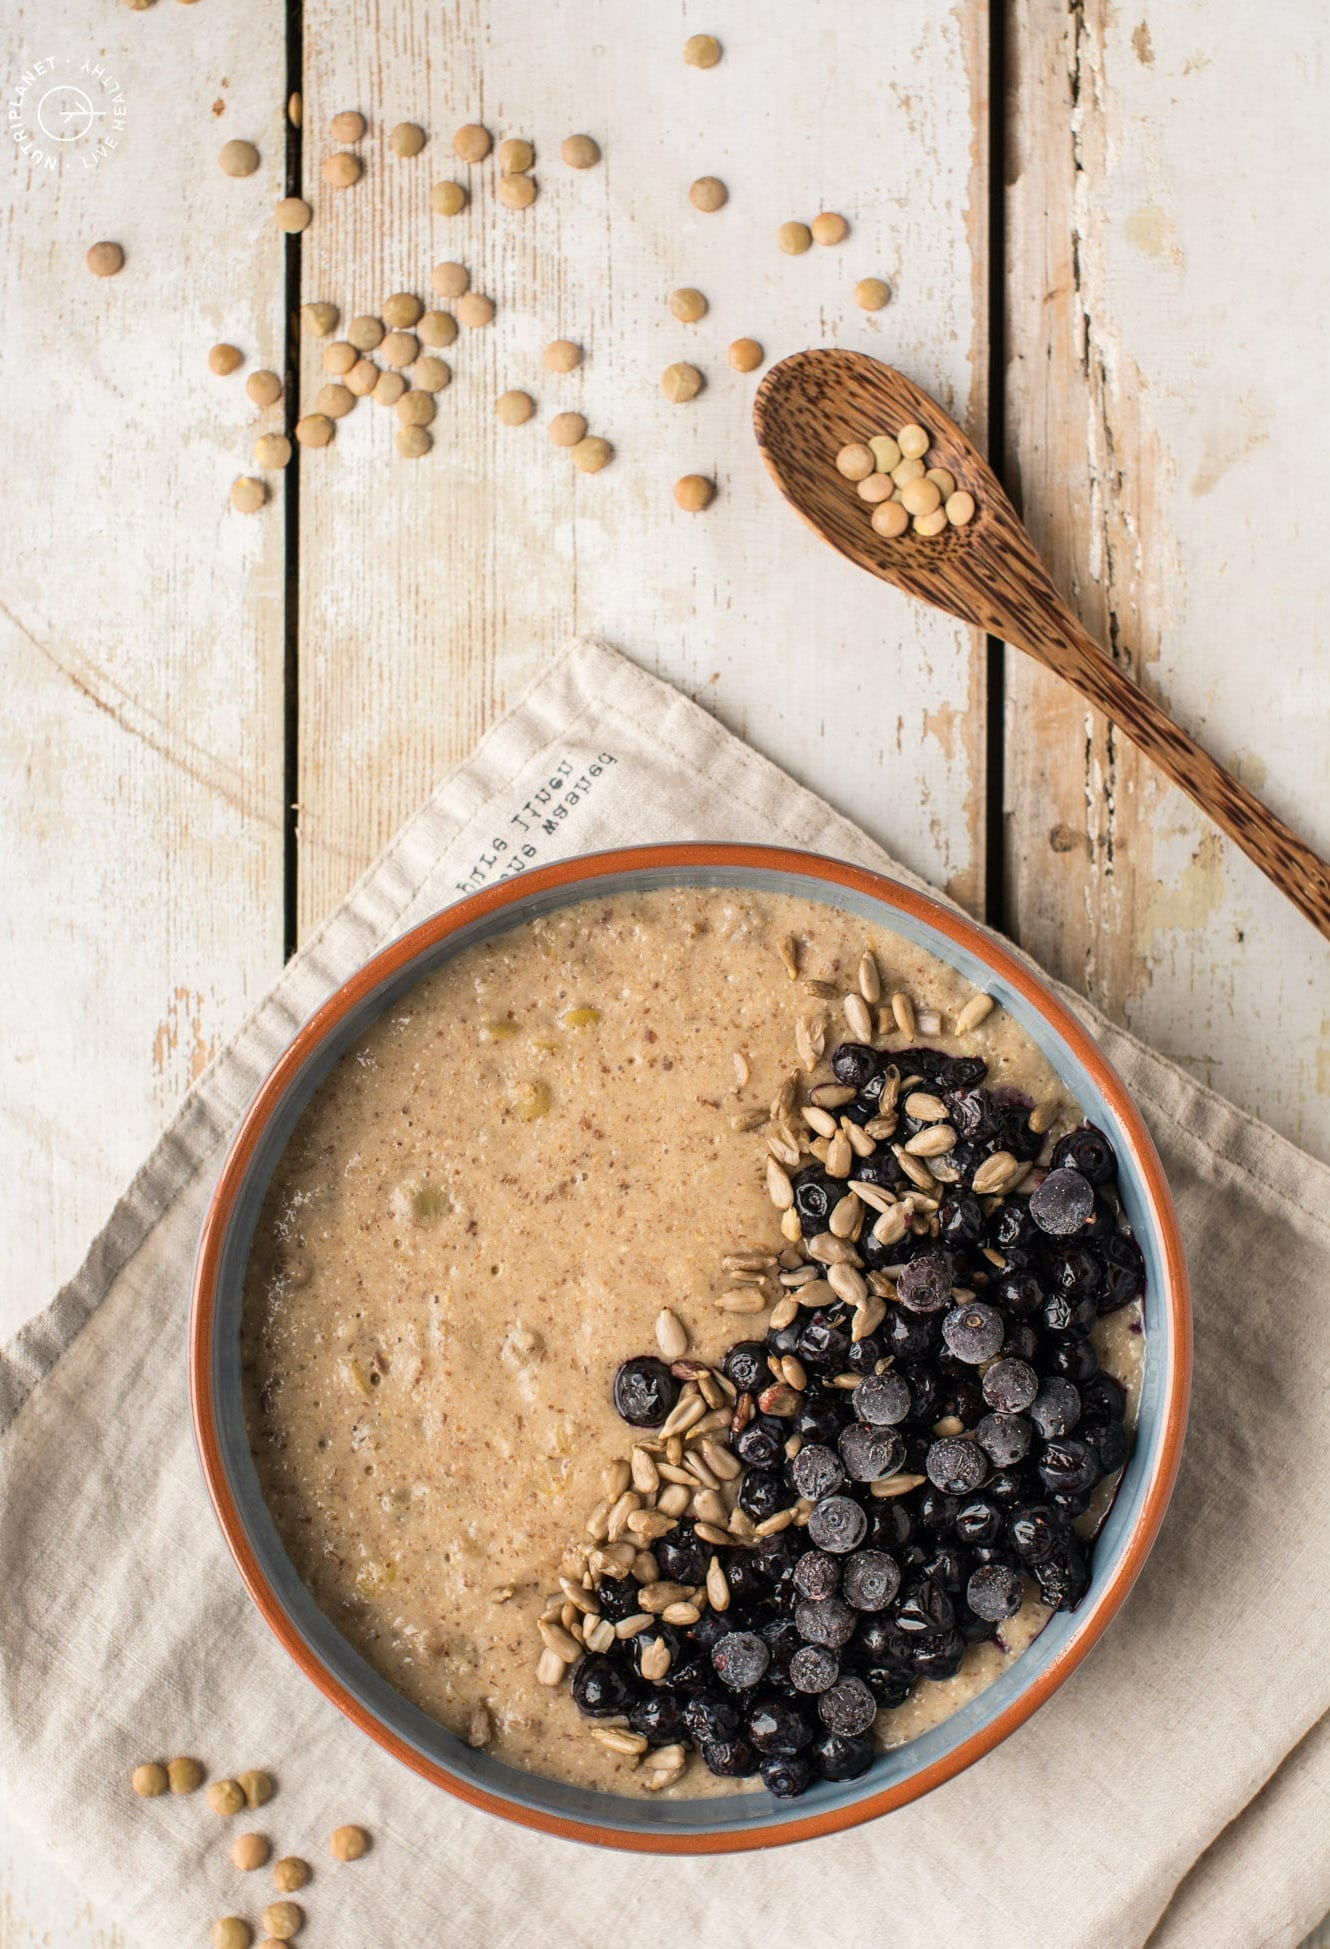 Low carb lentil oatmeal porridge